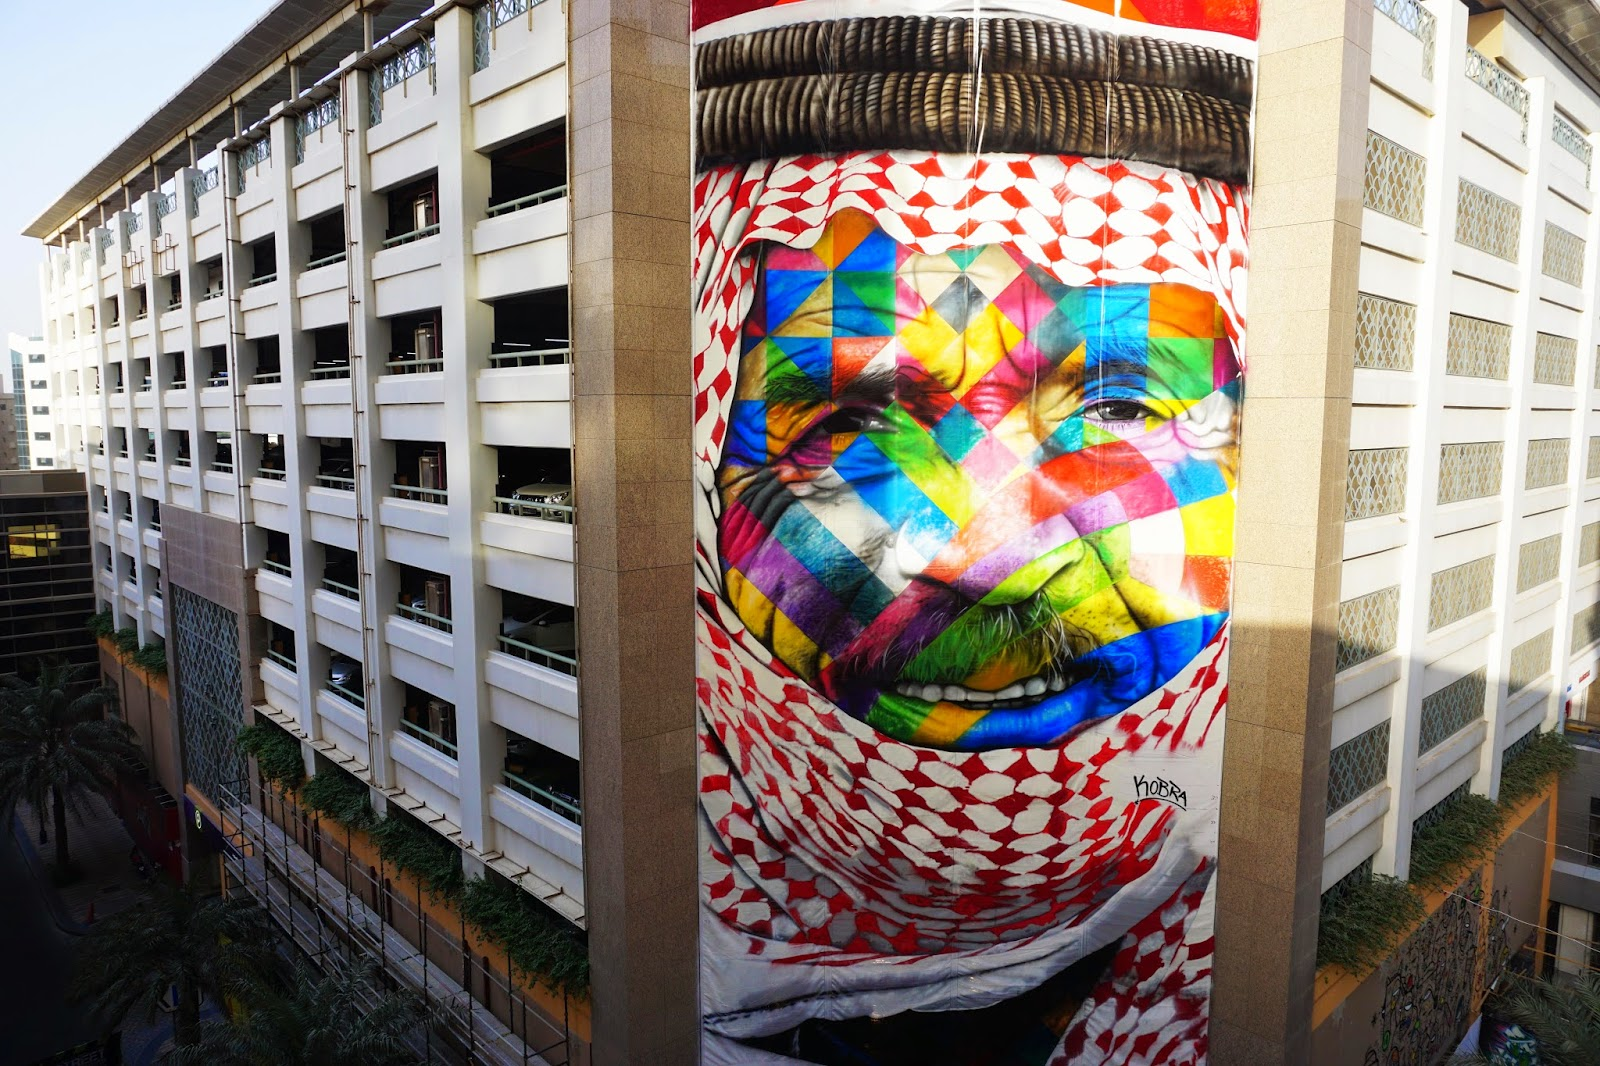 UAE is booming with public art and Edoardo Kobra is the latest artist to bring his artwork to the streets of Dubai.